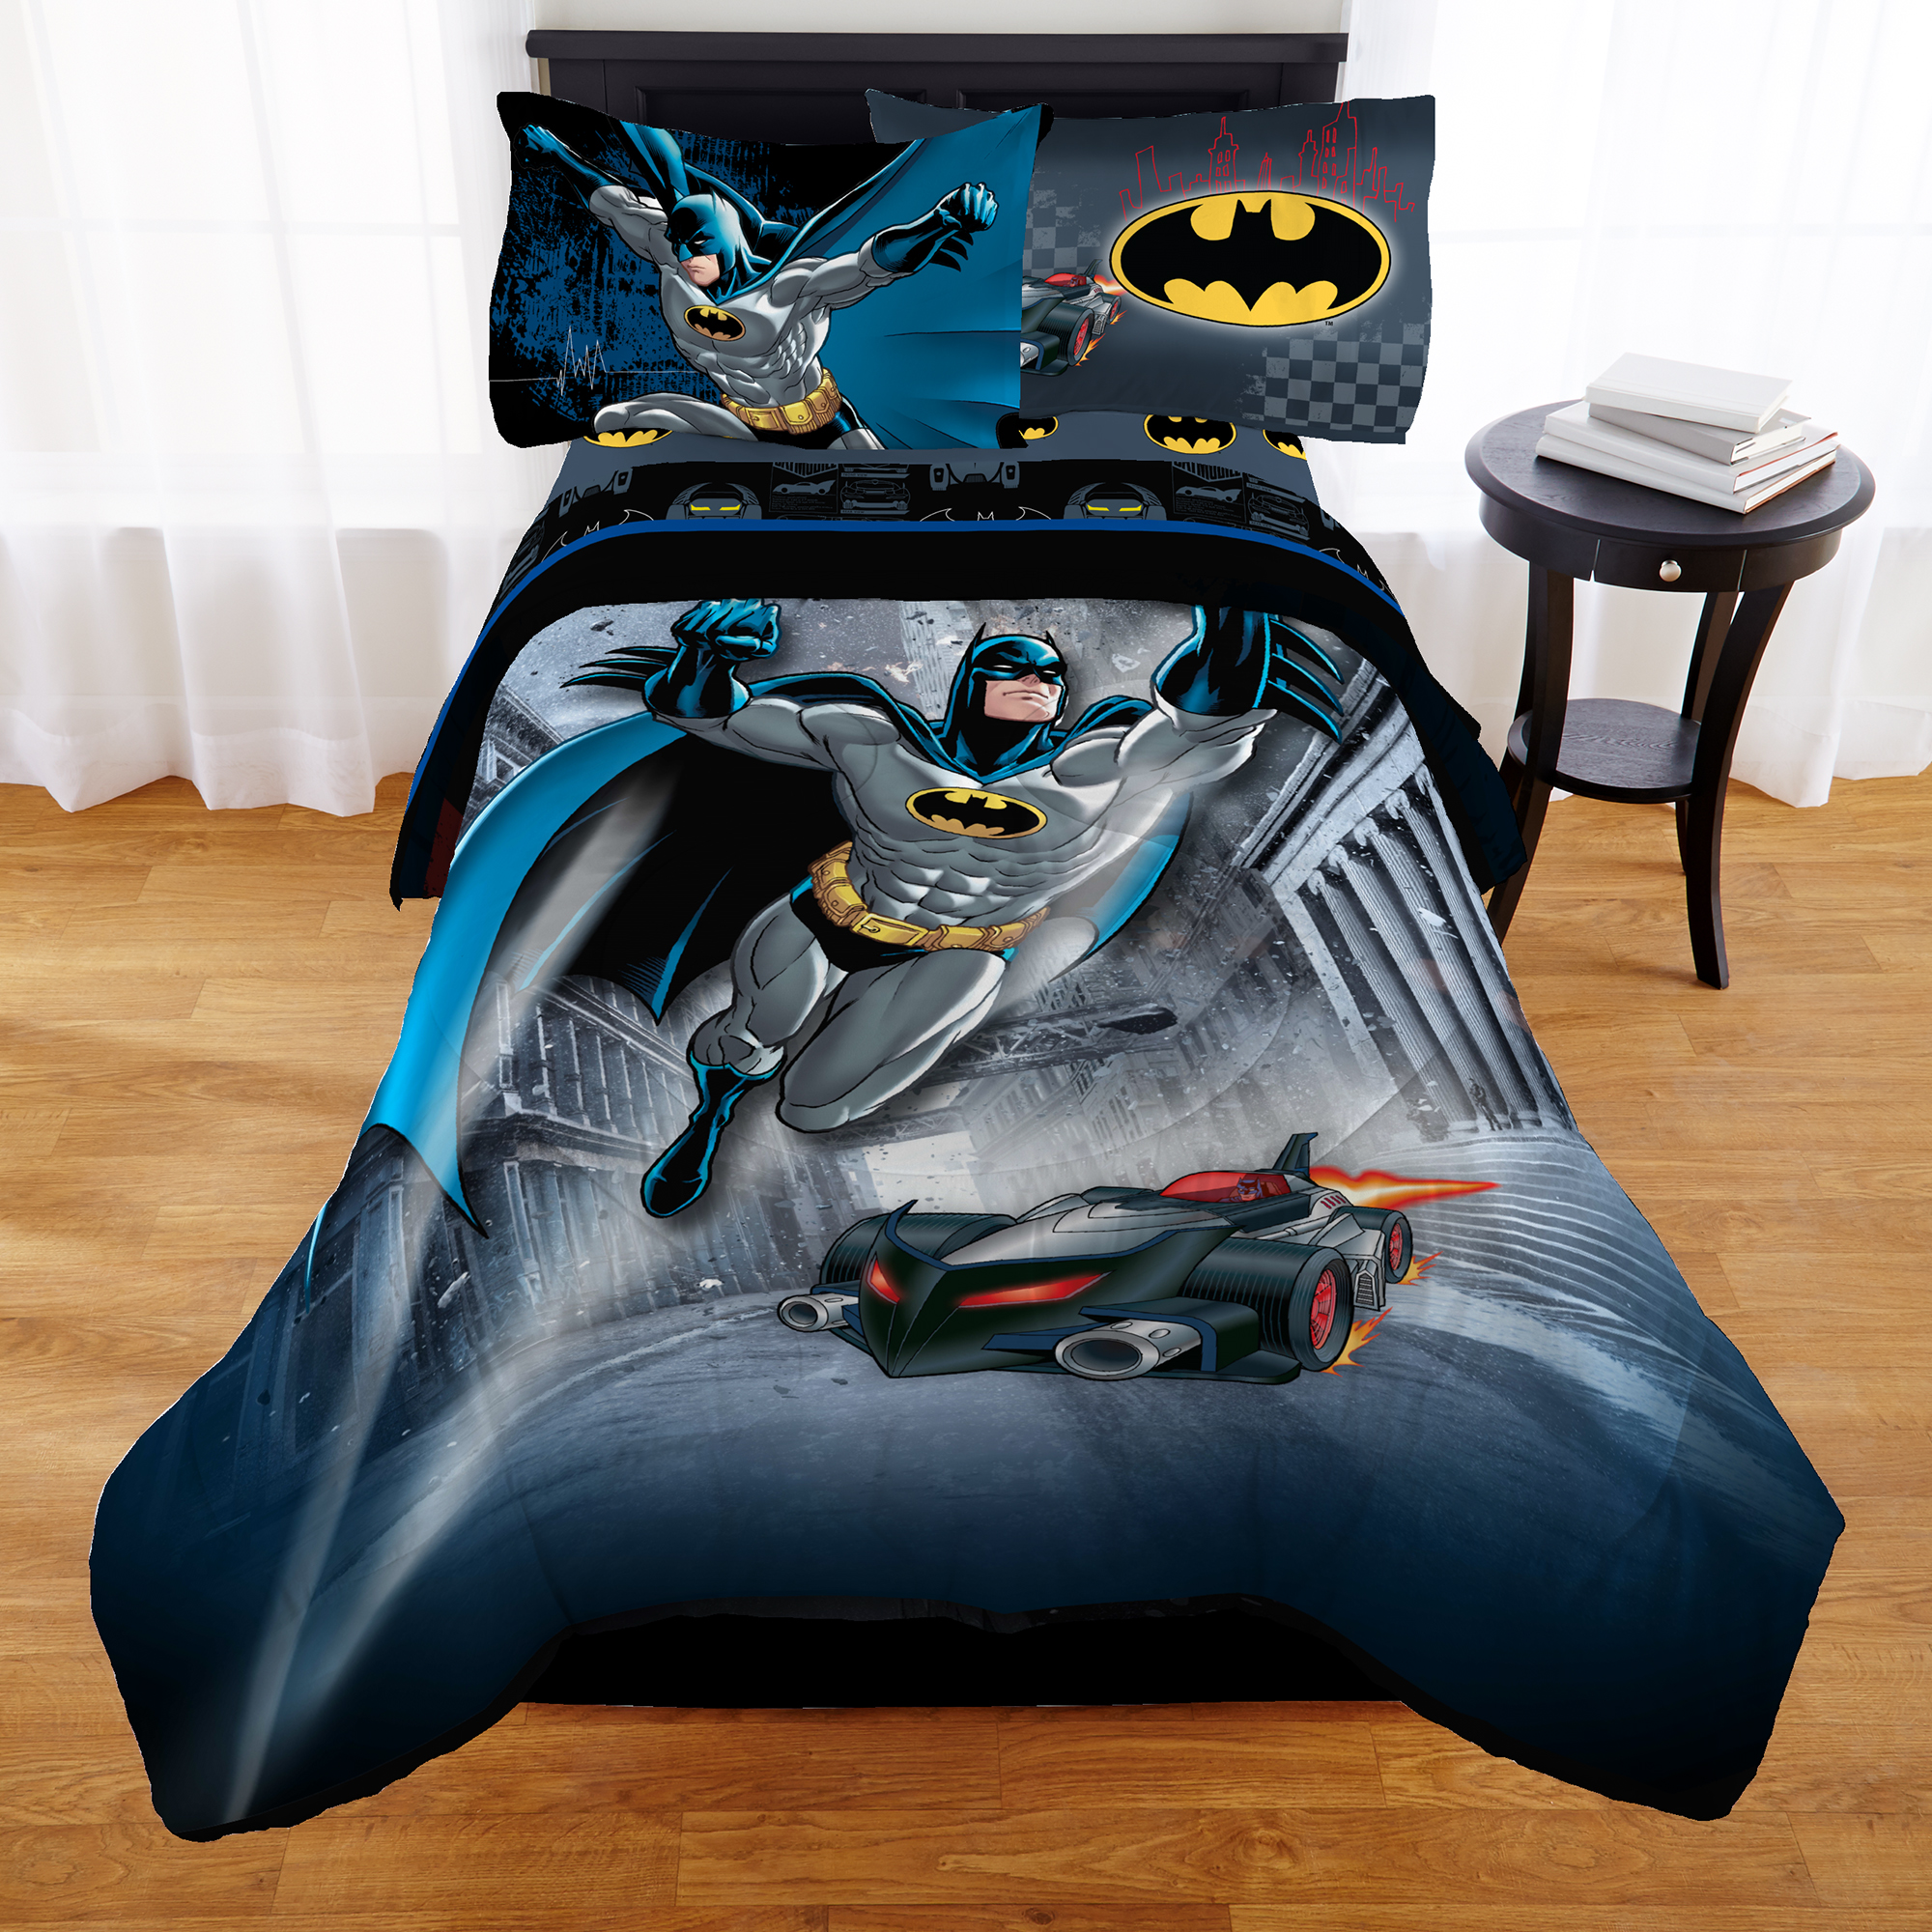 Warner Brothers Batman Guardian Speed Bed in a Bag Bedding Set